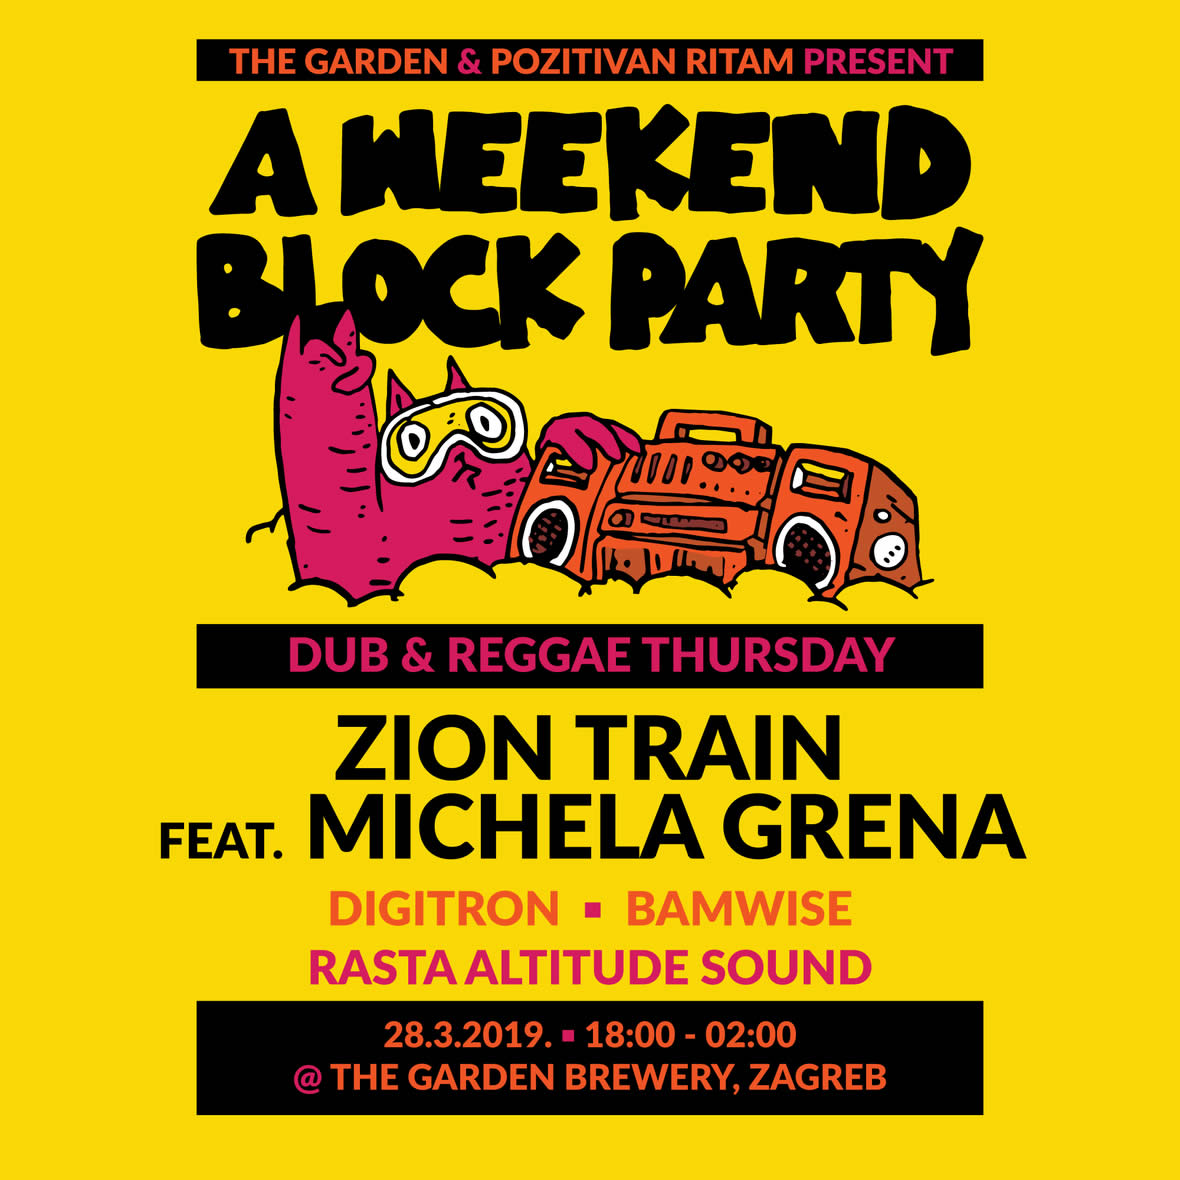 Zion Train, velikani duba slave 30 godina na A Weekend Block Partyju